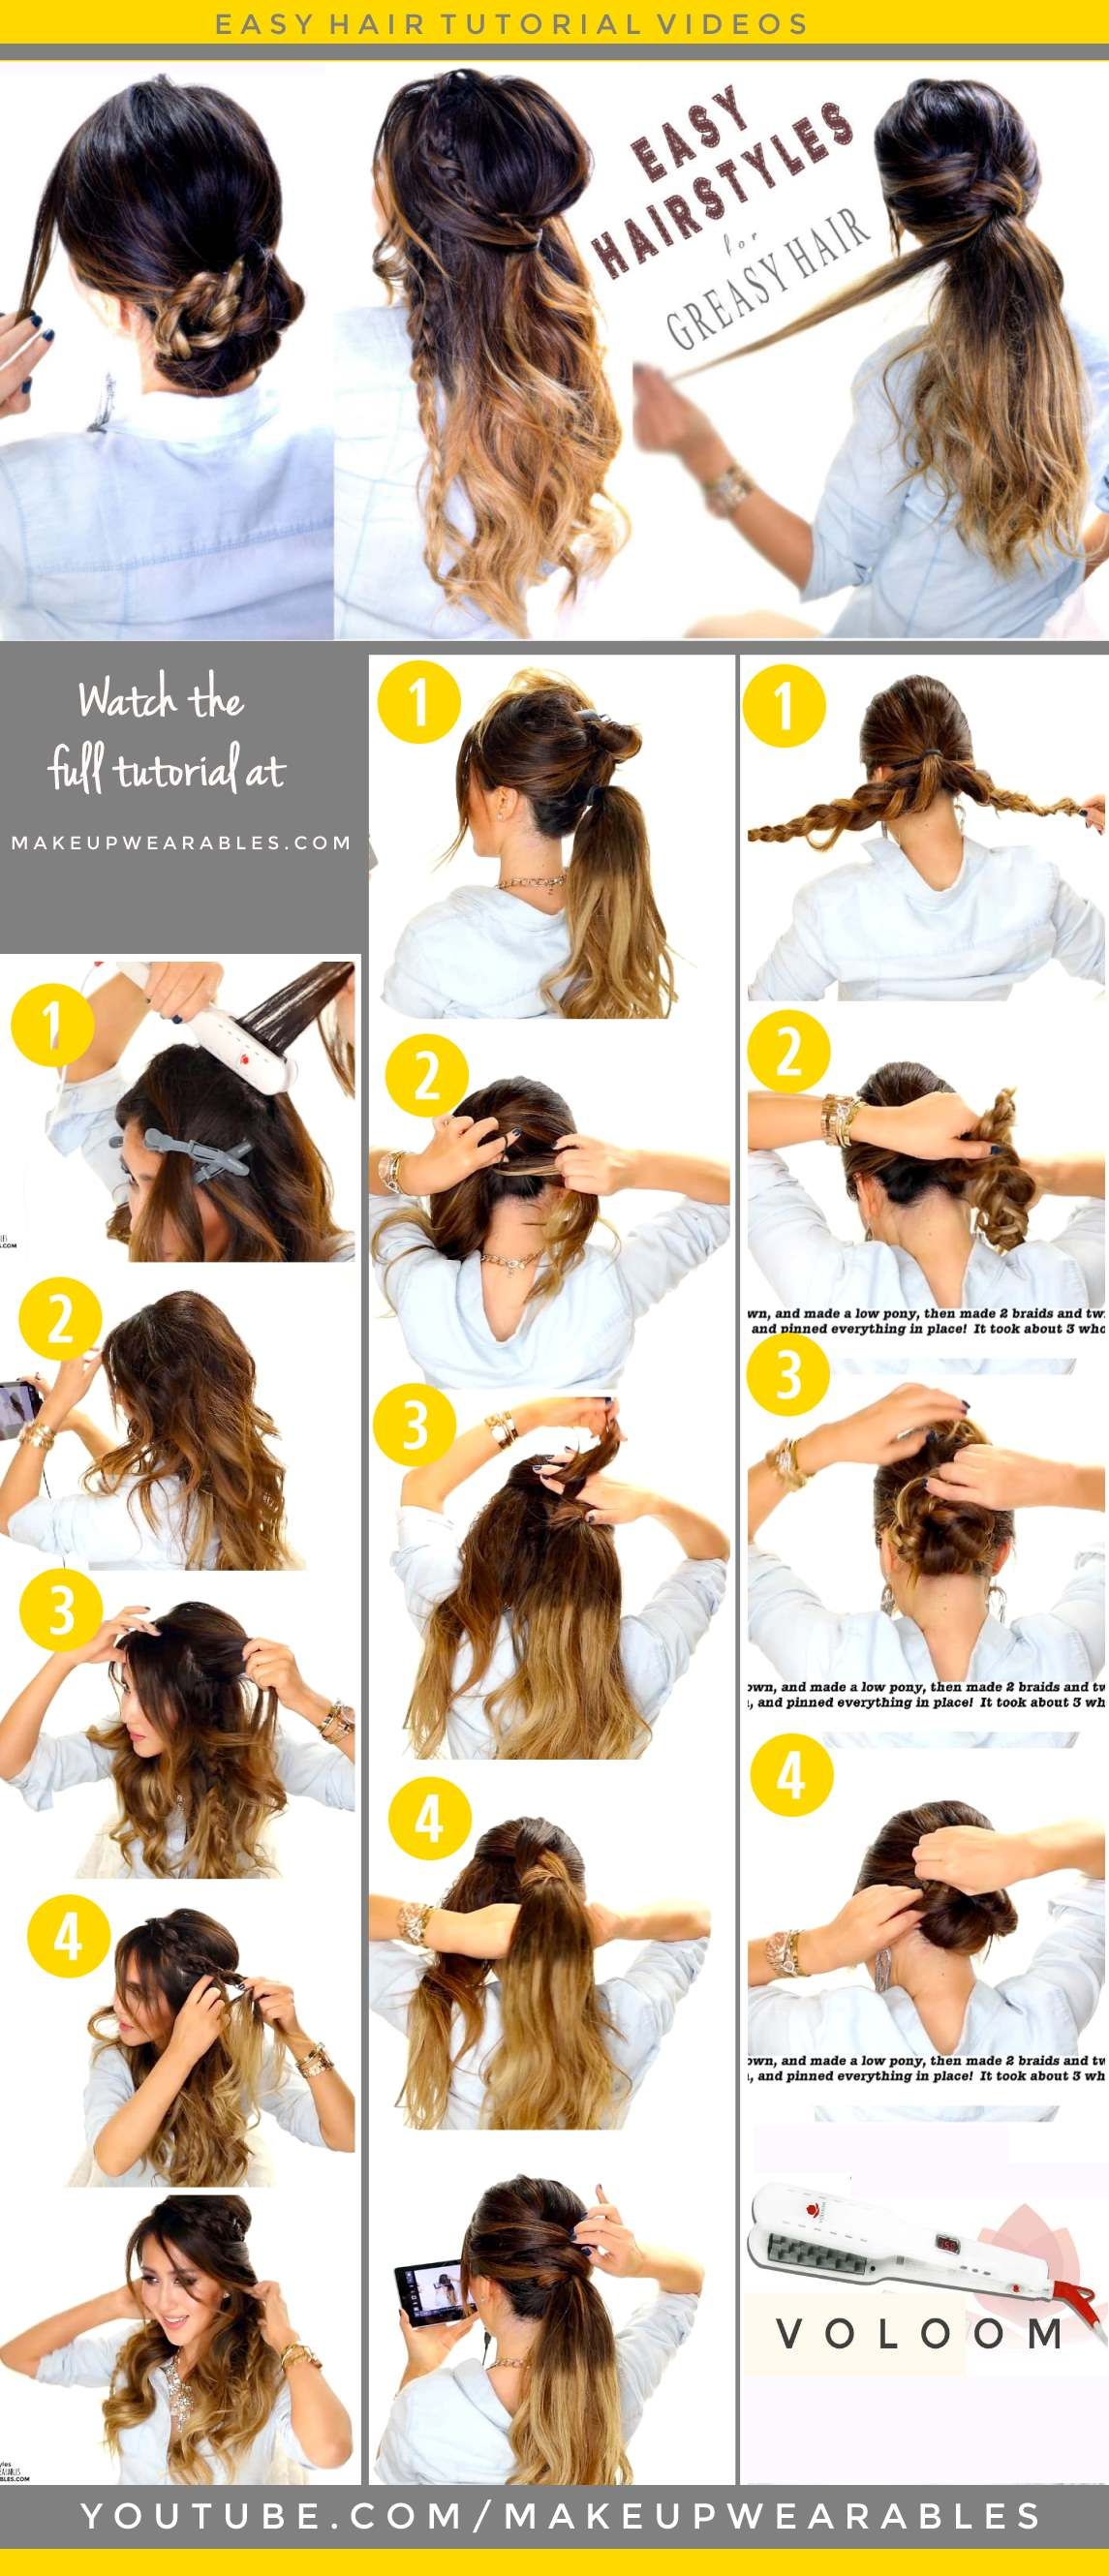 4 Easy Hairstyles for Greasy Hair